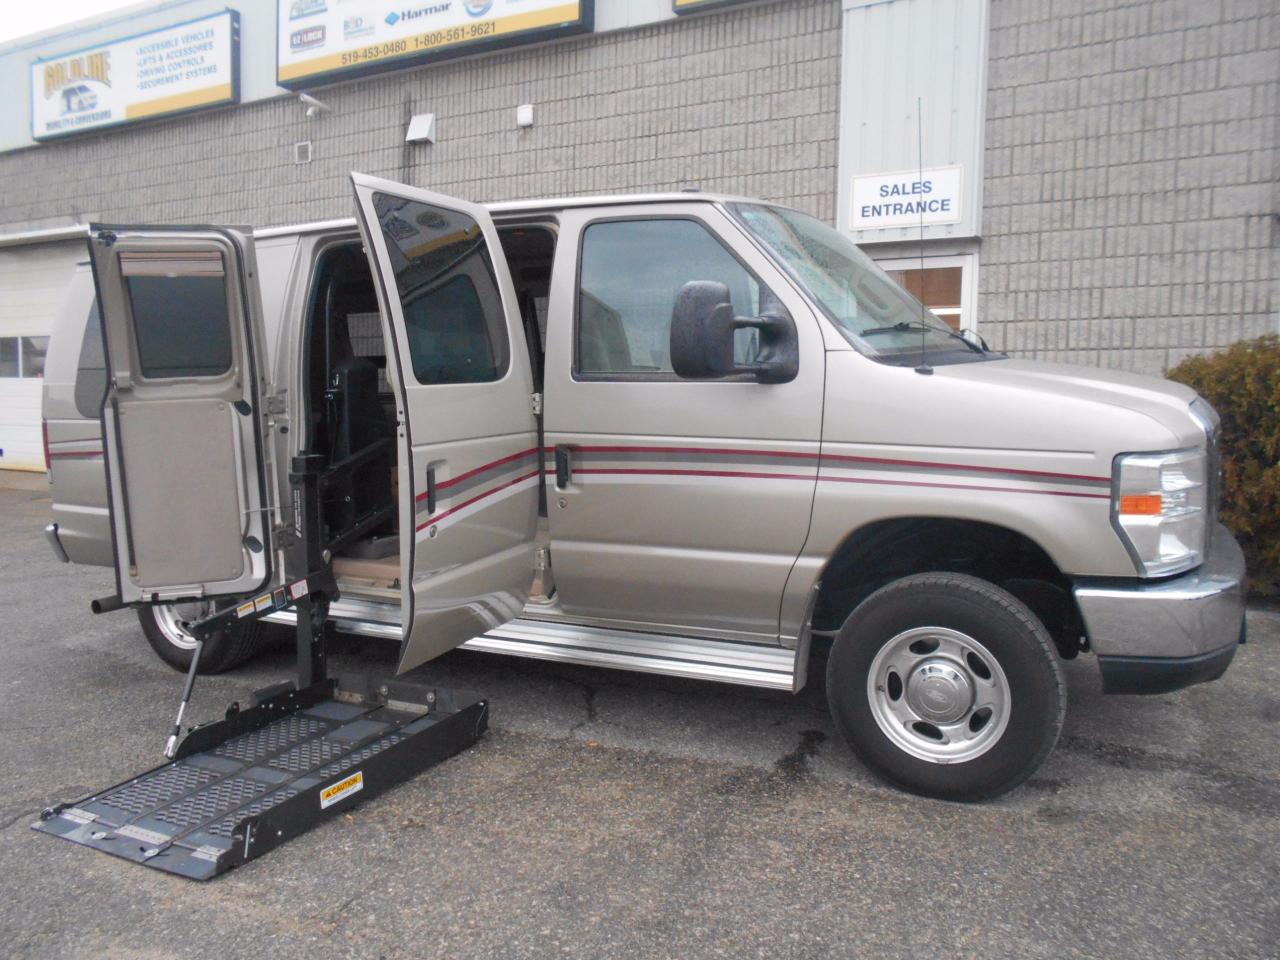 Sofa Bed Sale London Ontario Used 2011 Ford E 150 Wheelchair Accessible Side Lift For